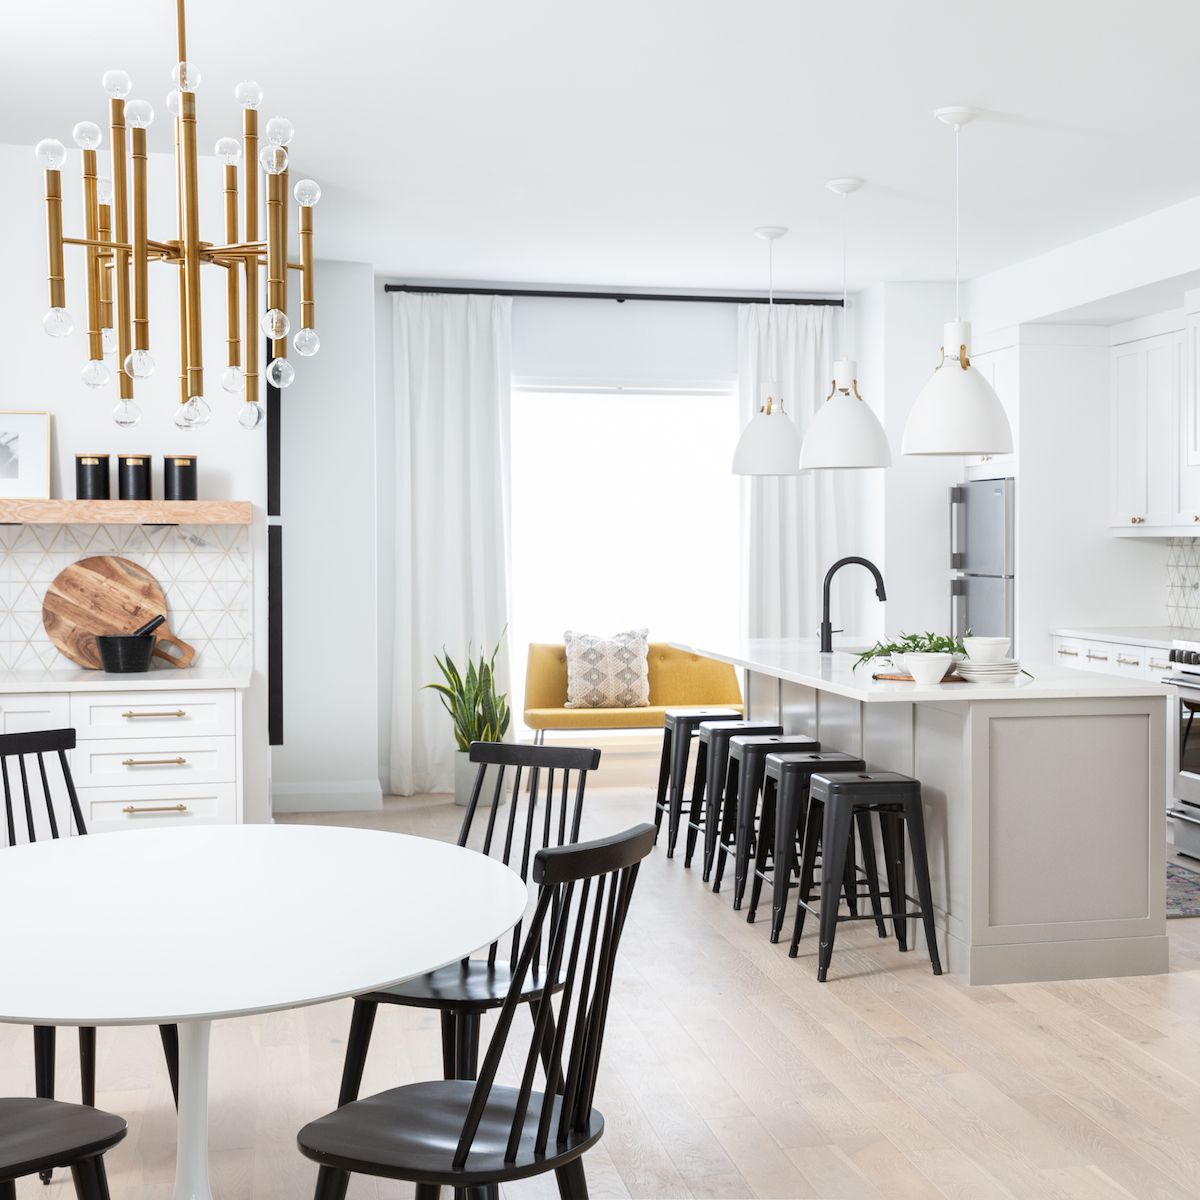 An open-concept kitchen and dining room with coordinated chairs and lighting